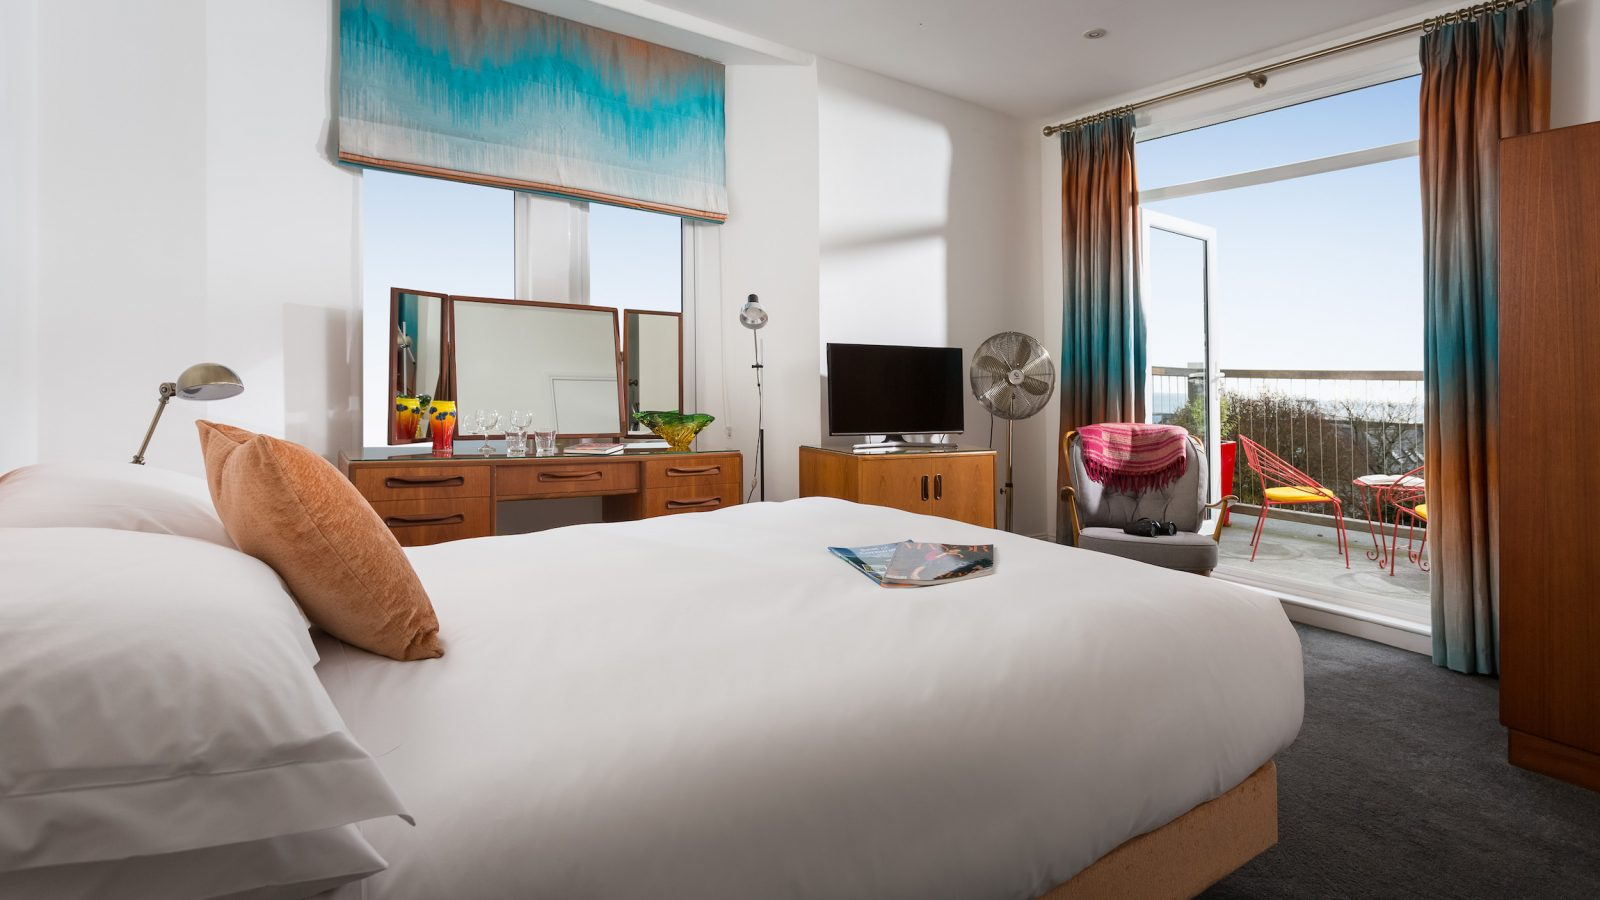 Luxury king room on first floor with sea views